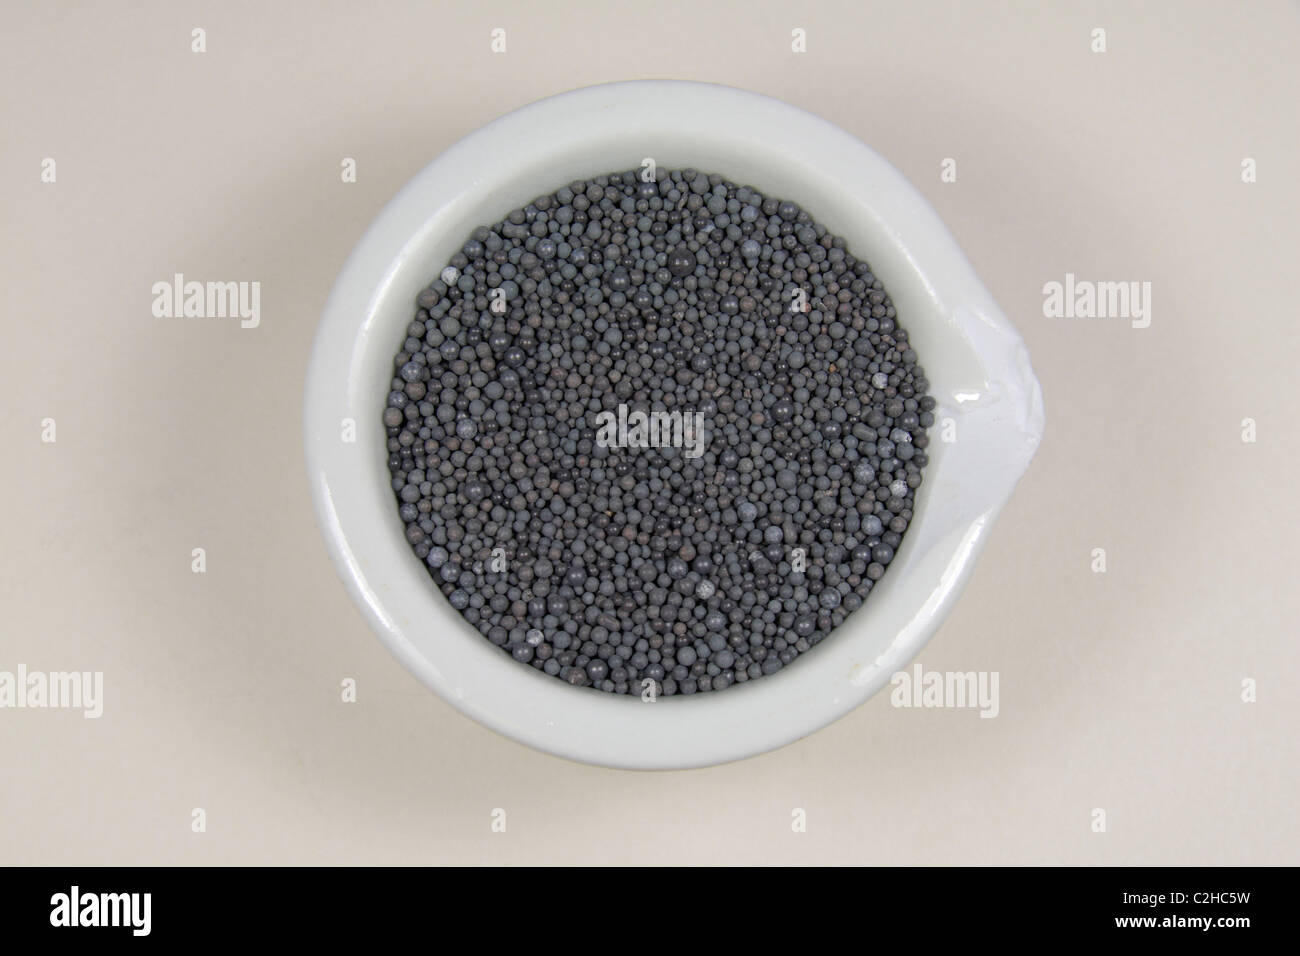 Different uses of lead: lead strip (construction/damp proofing), lead shot and lead piping. - Stock Image